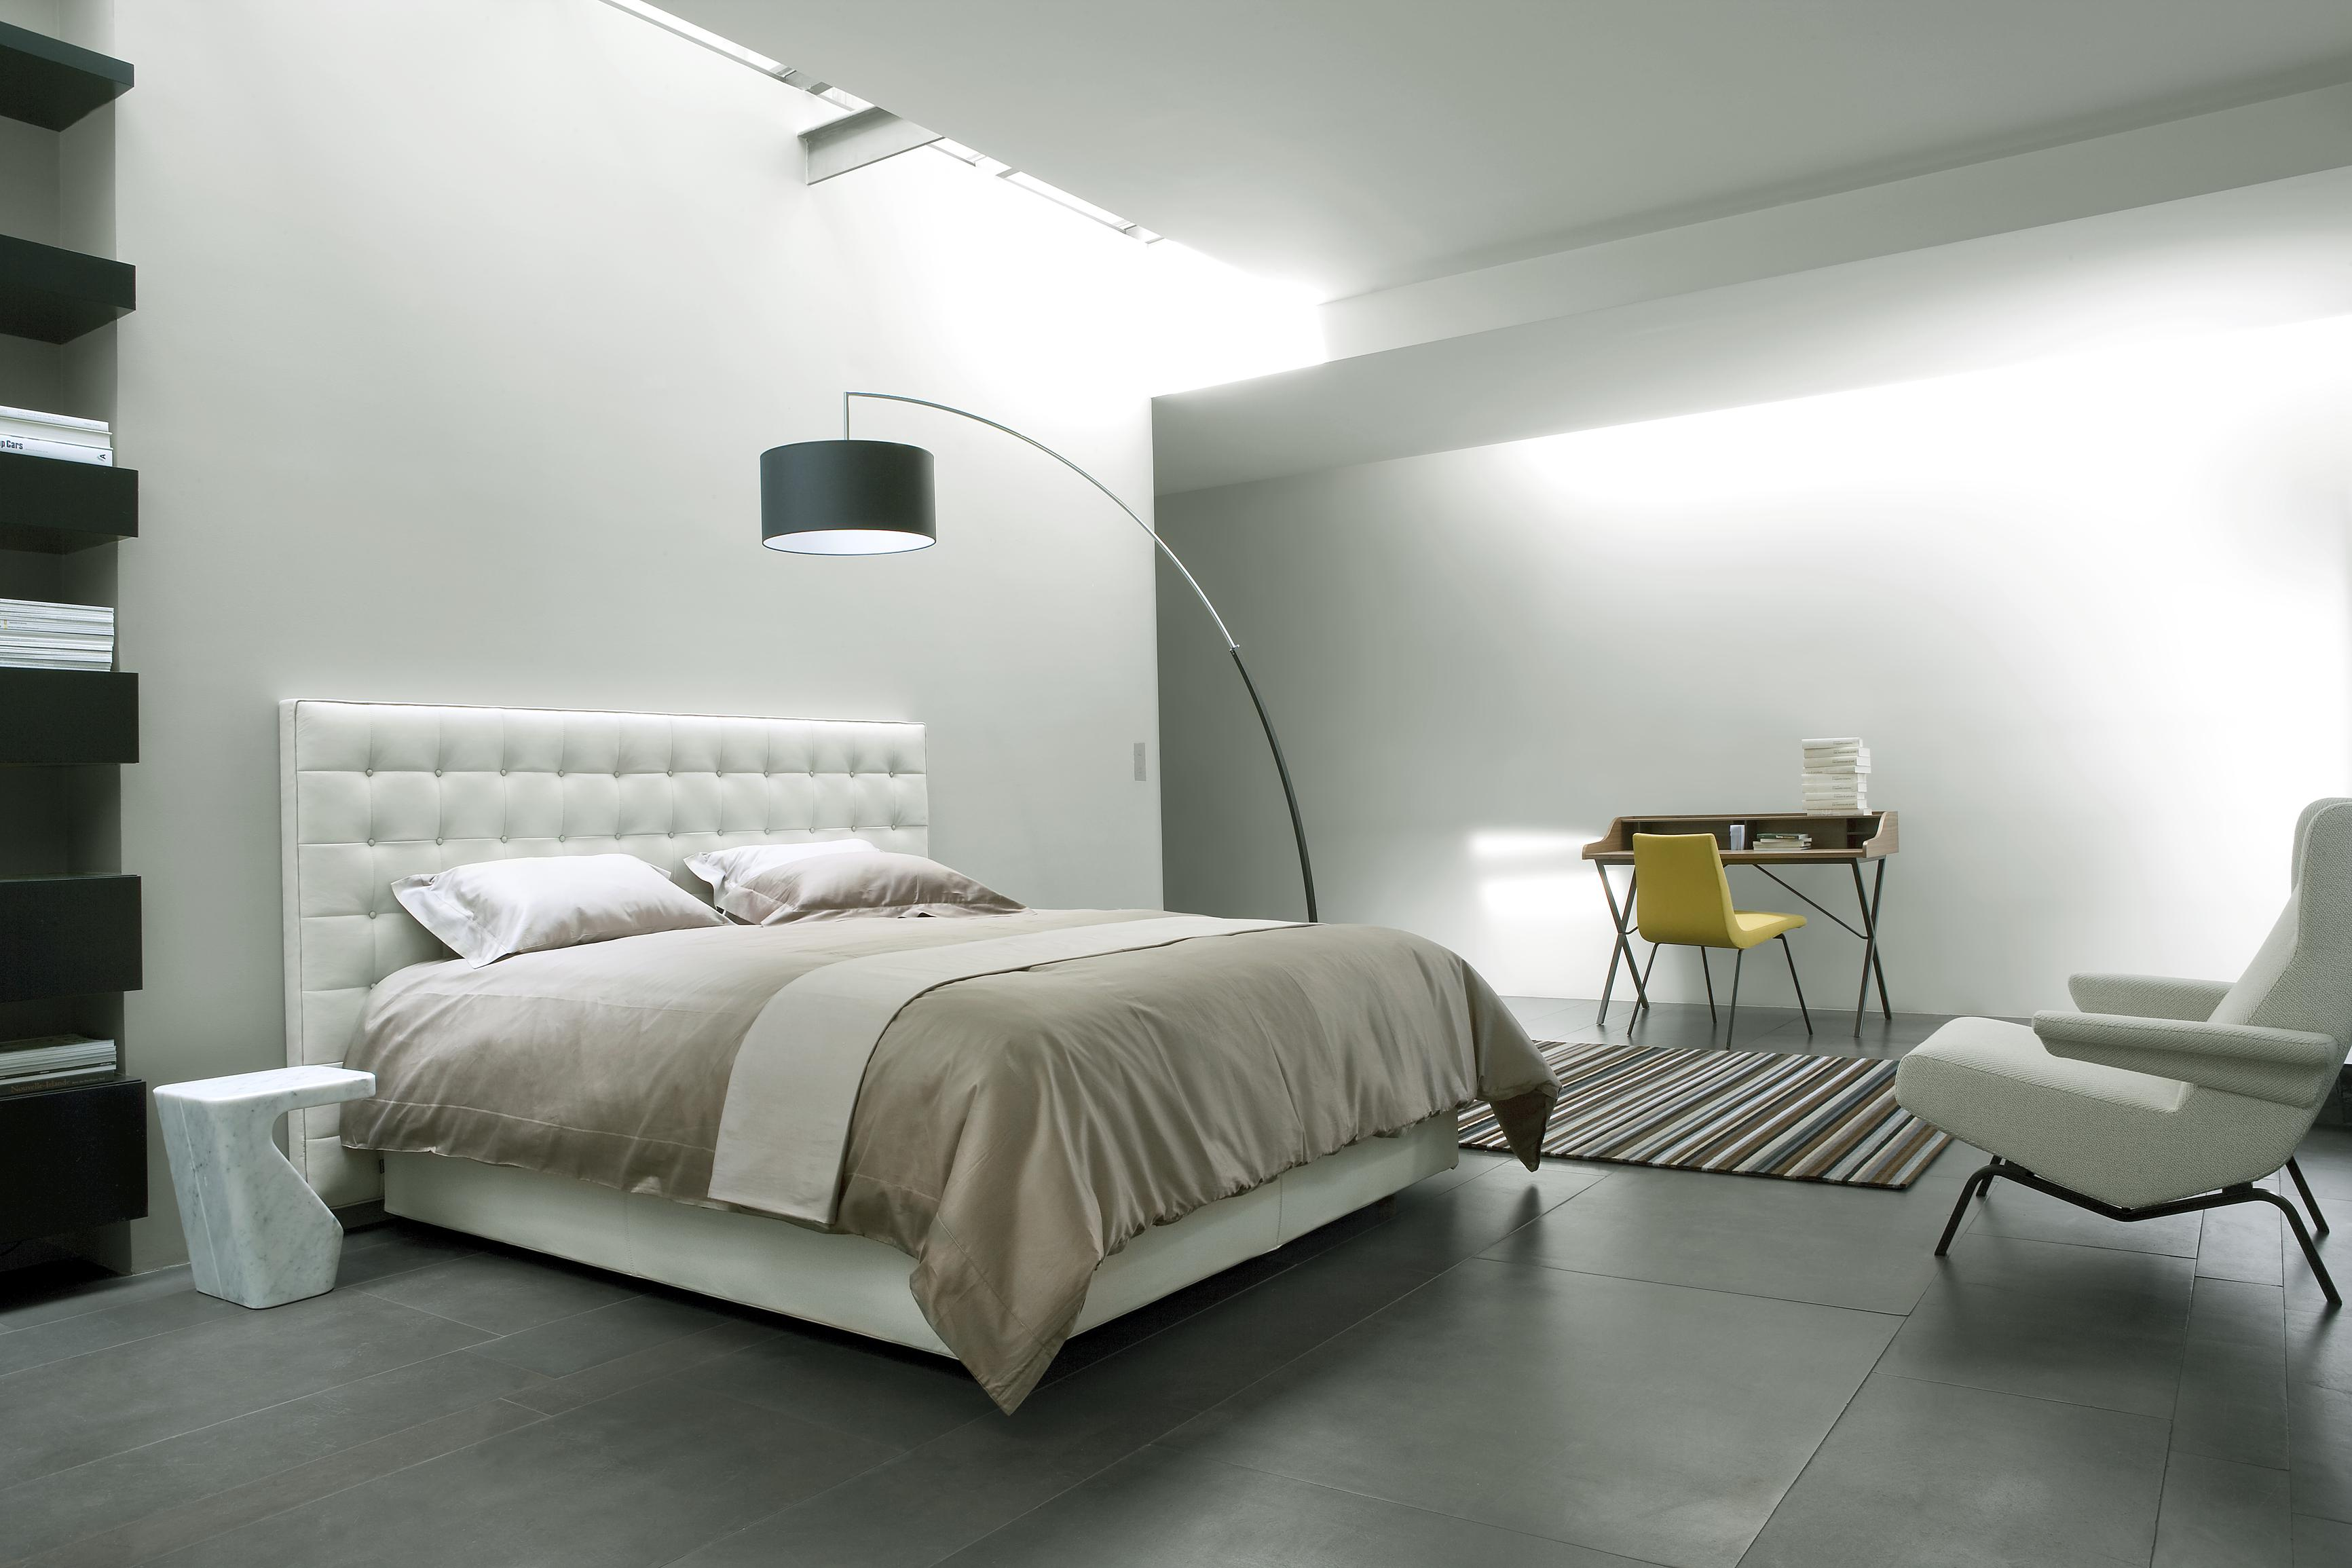 nador betten designer ligne roset ligne roset. Black Bedroom Furniture Sets. Home Design Ideas